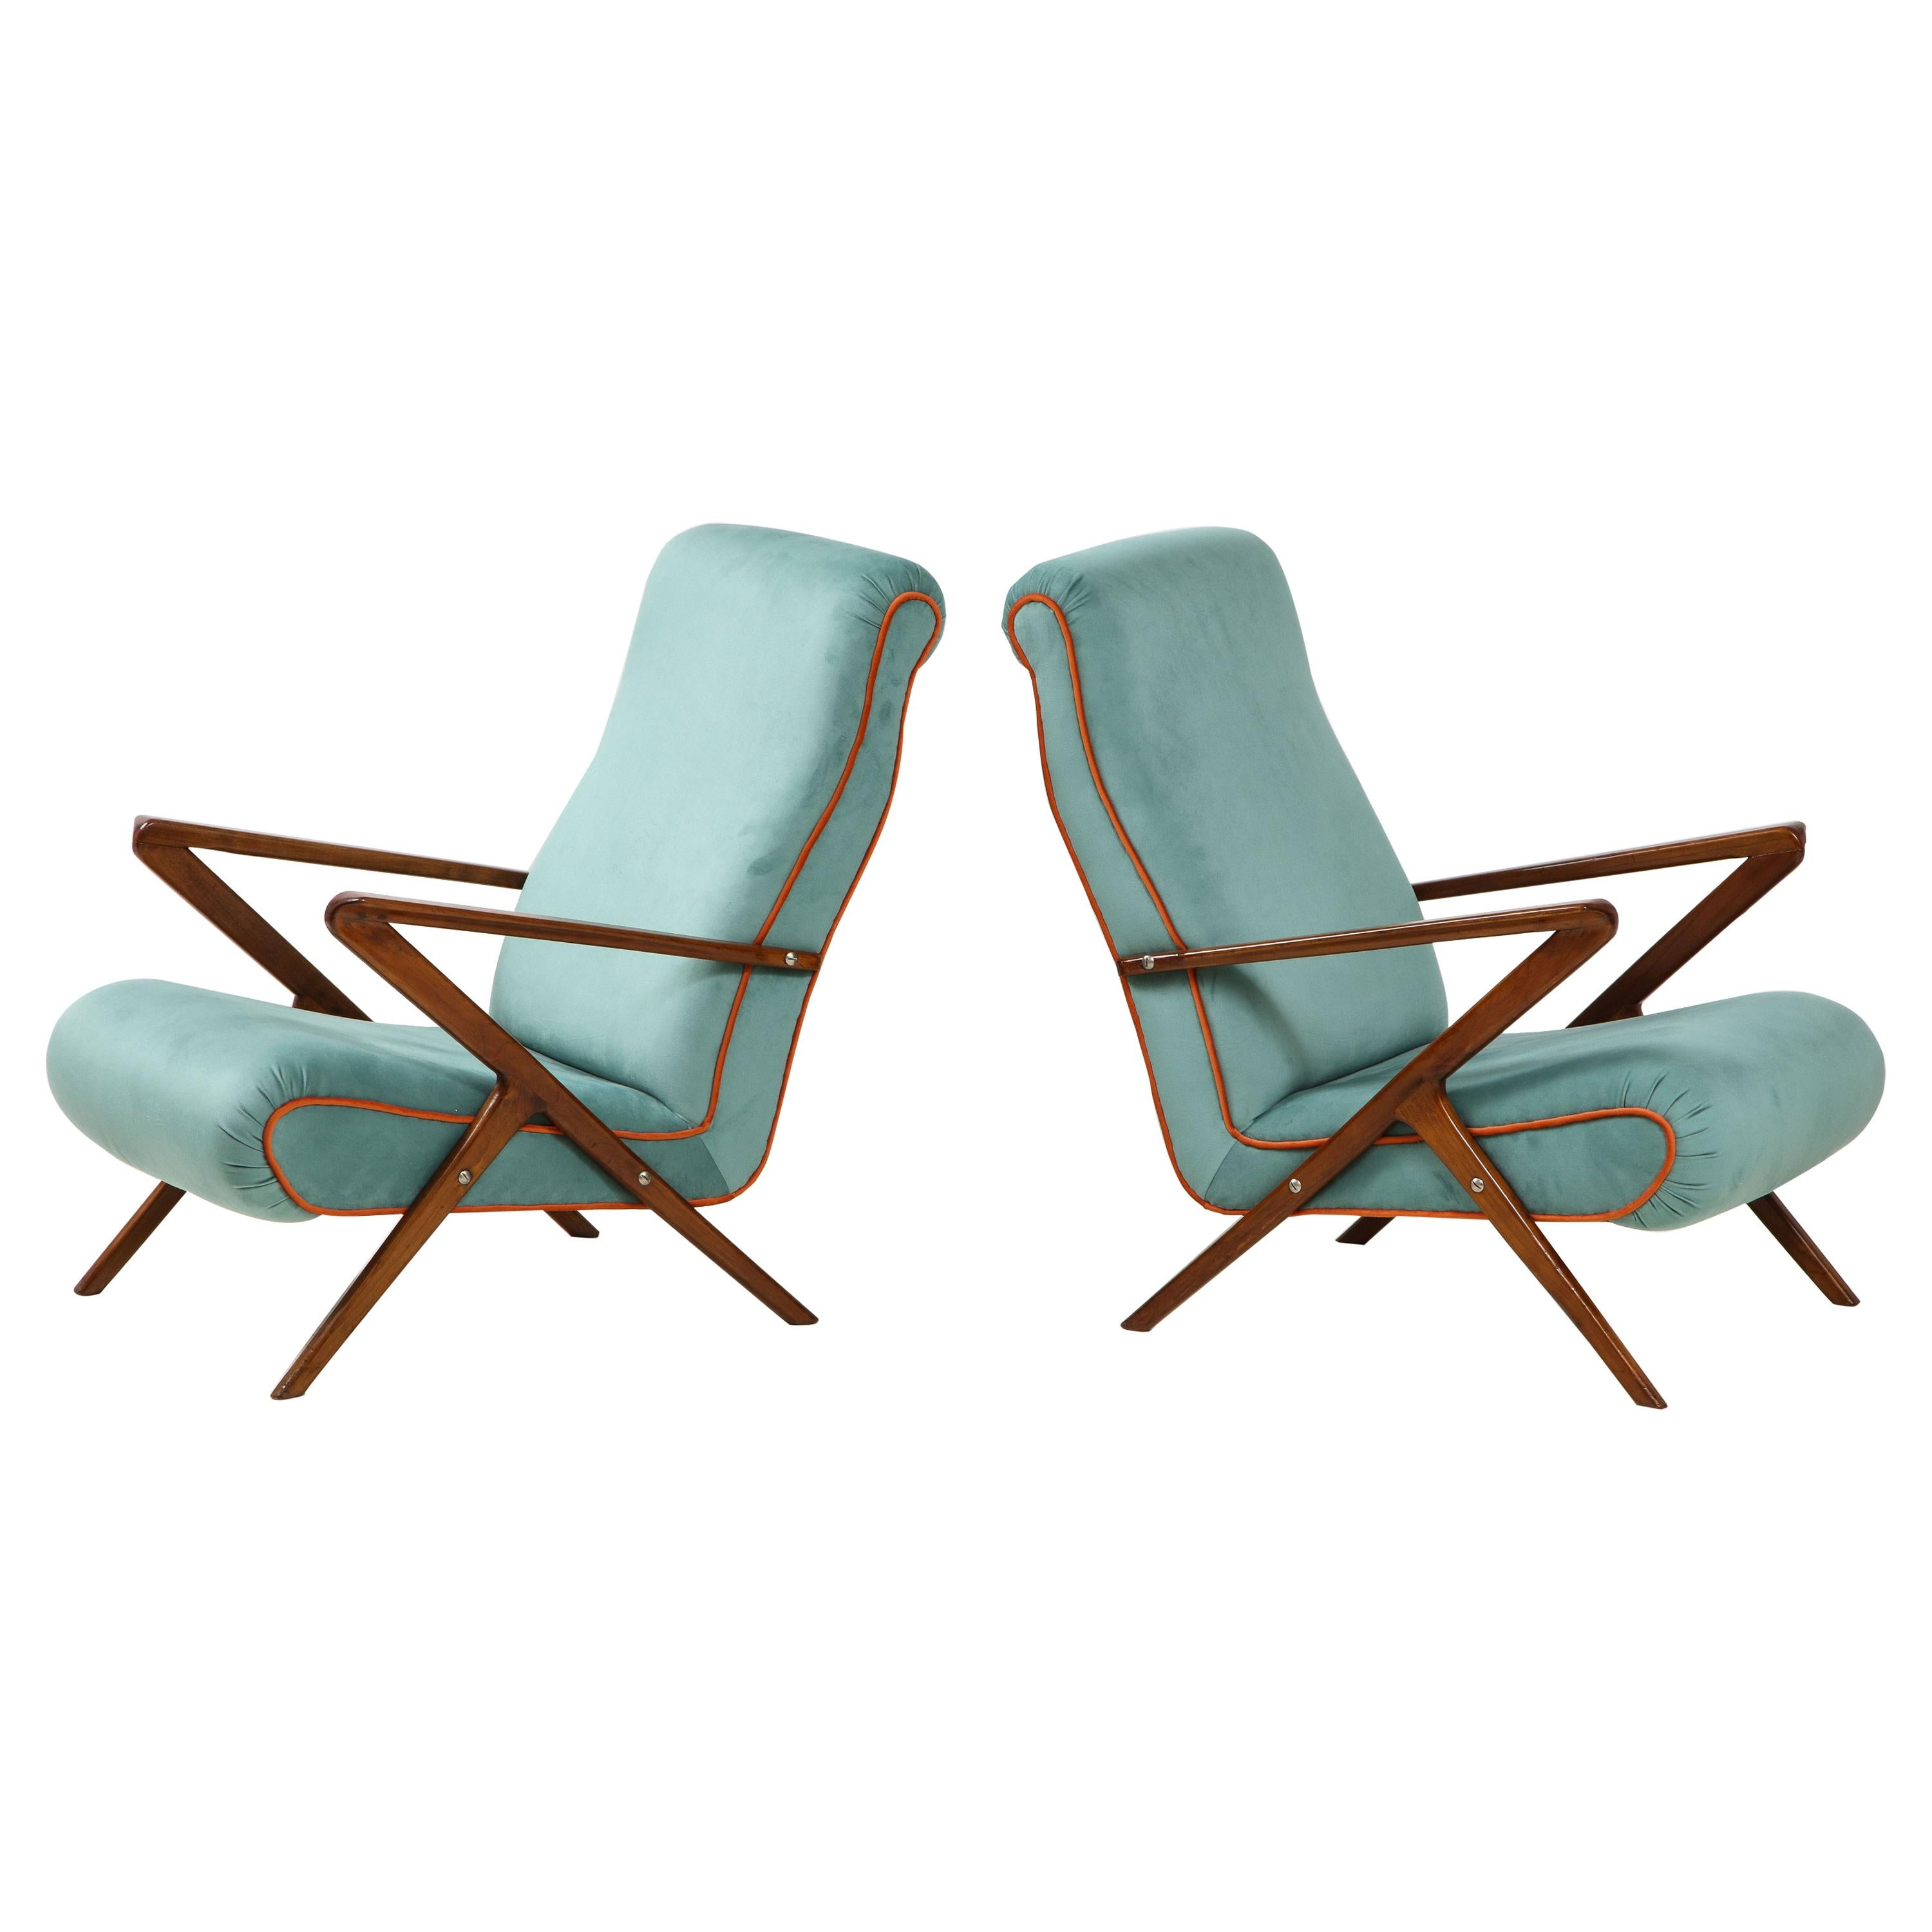 Pair of Italian 1950s Sculptural Walnut Upholstered Armchairs or Lounge Chairs